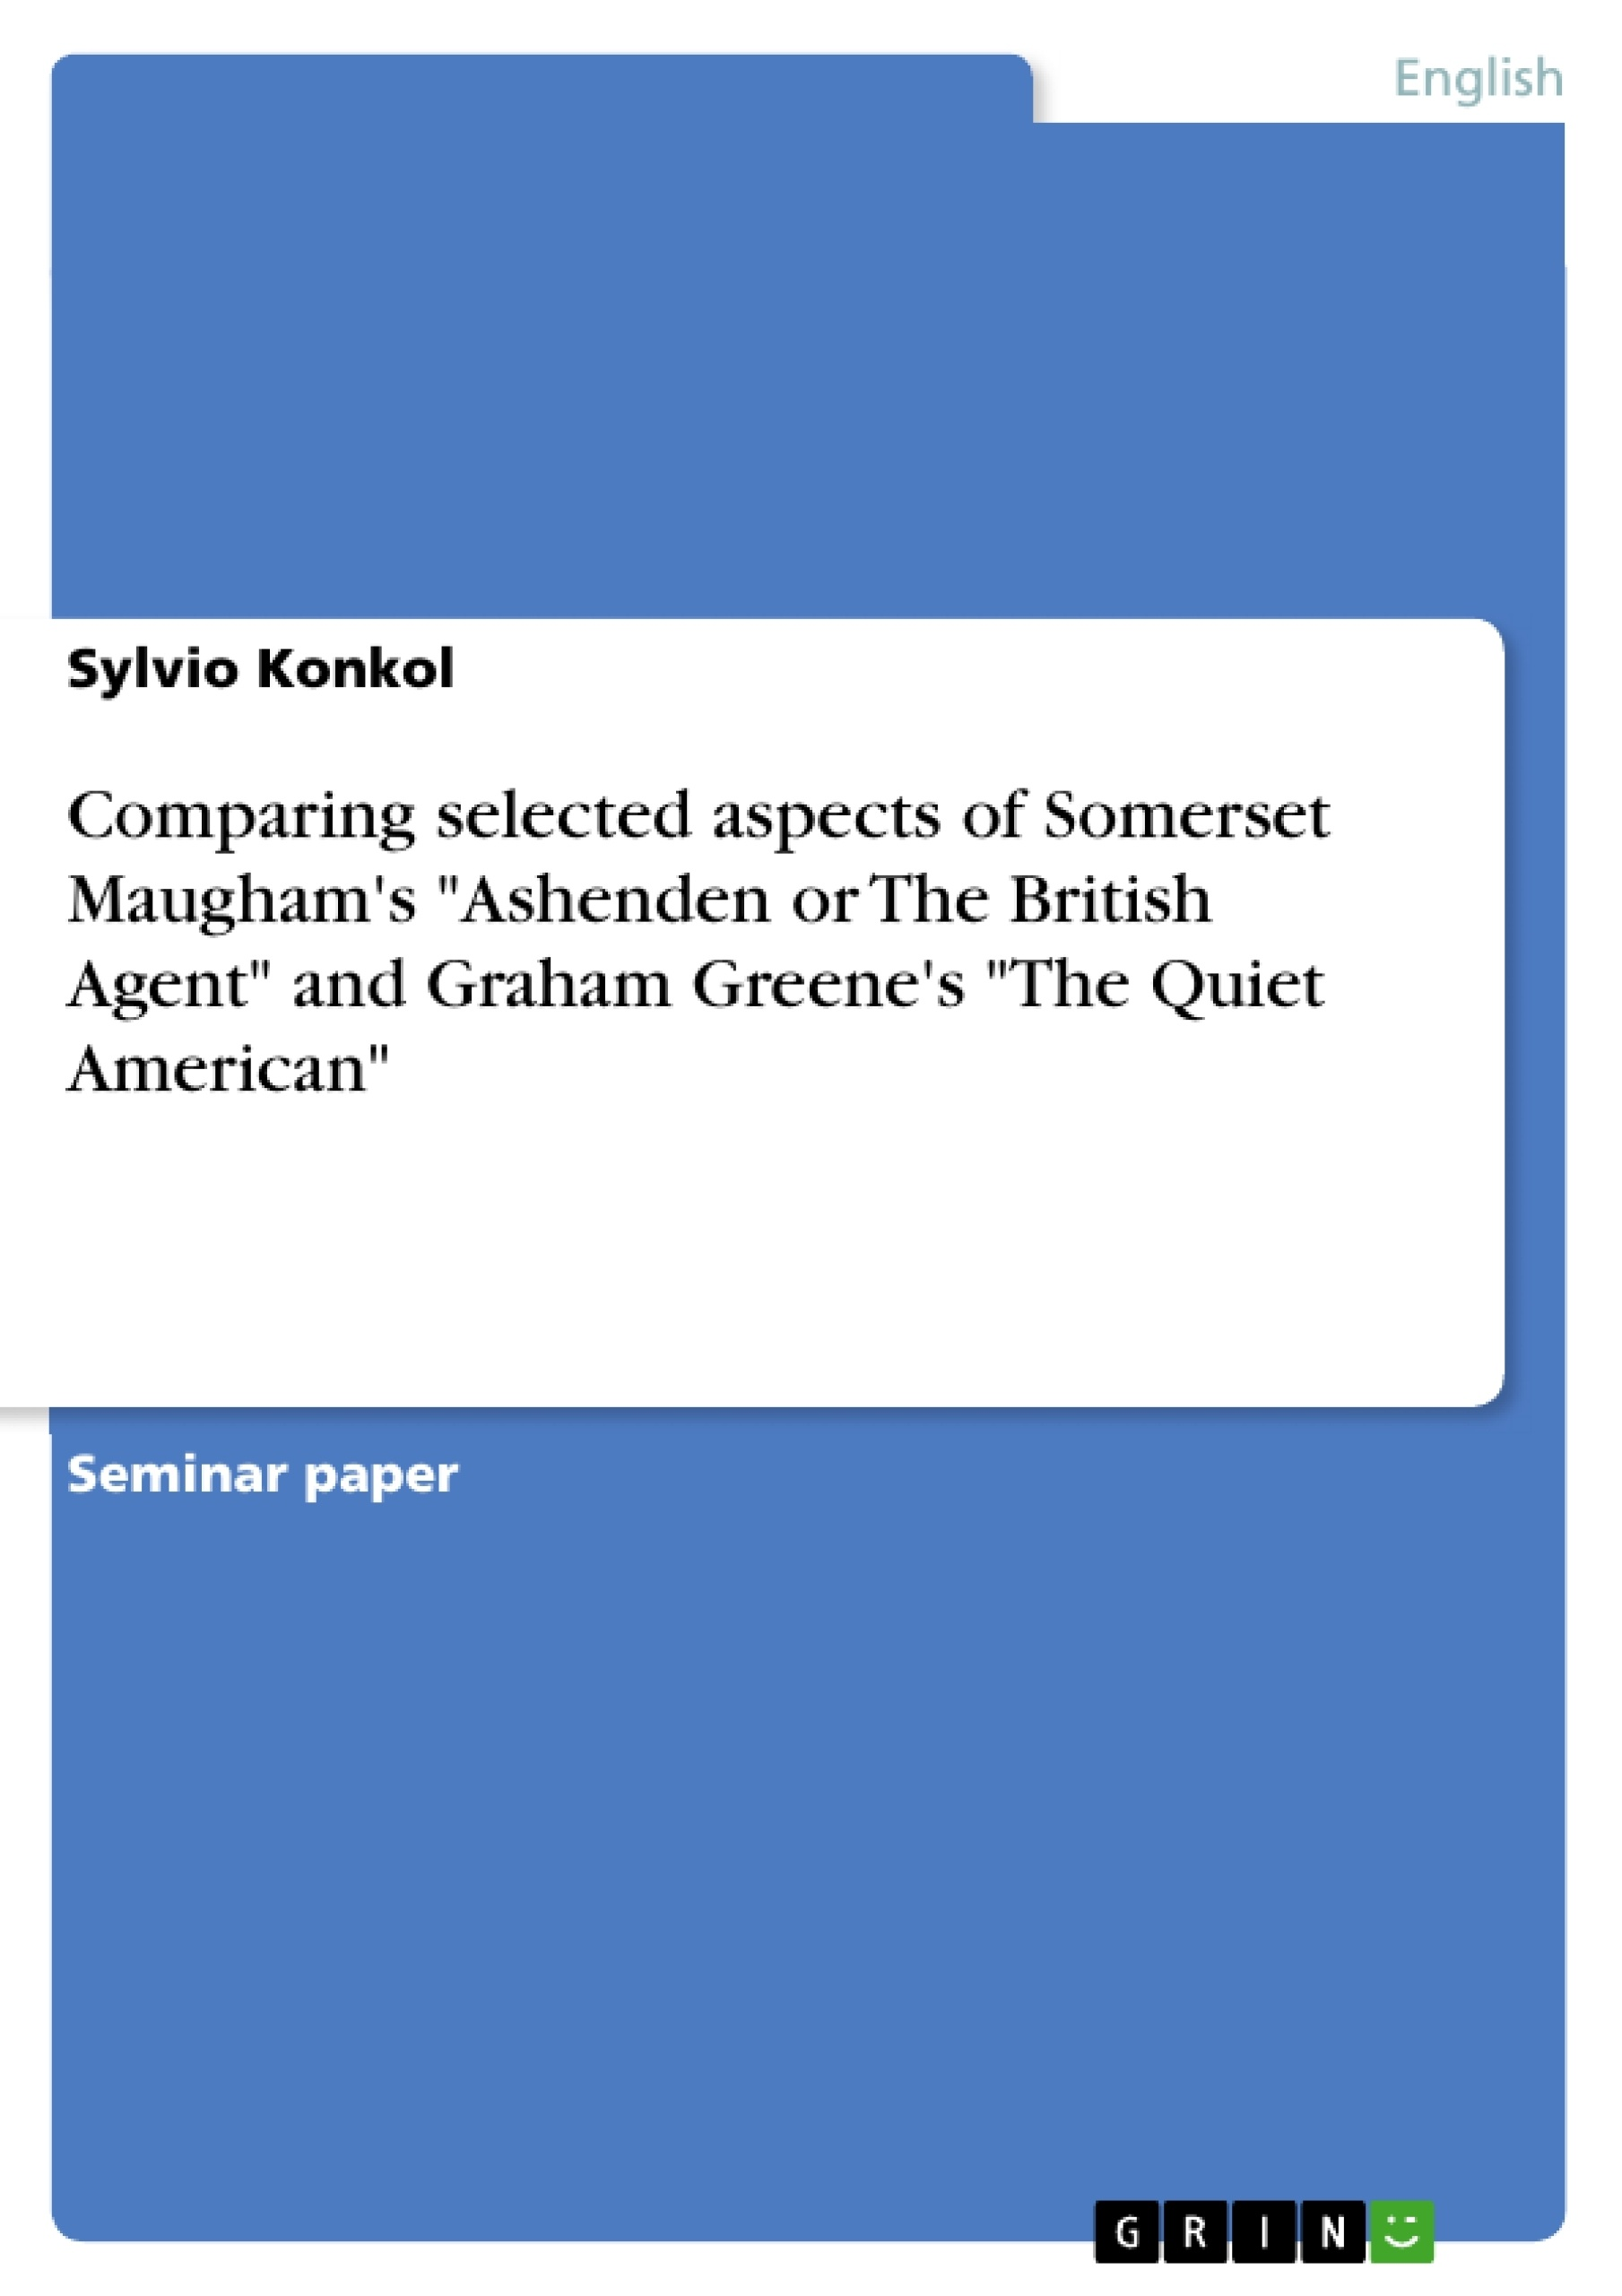 """Title: Comparing selected aspects of Somerset Maugham's """"Ashenden or The British Agent"""" and Graham Greene's """"The Quiet American"""""""